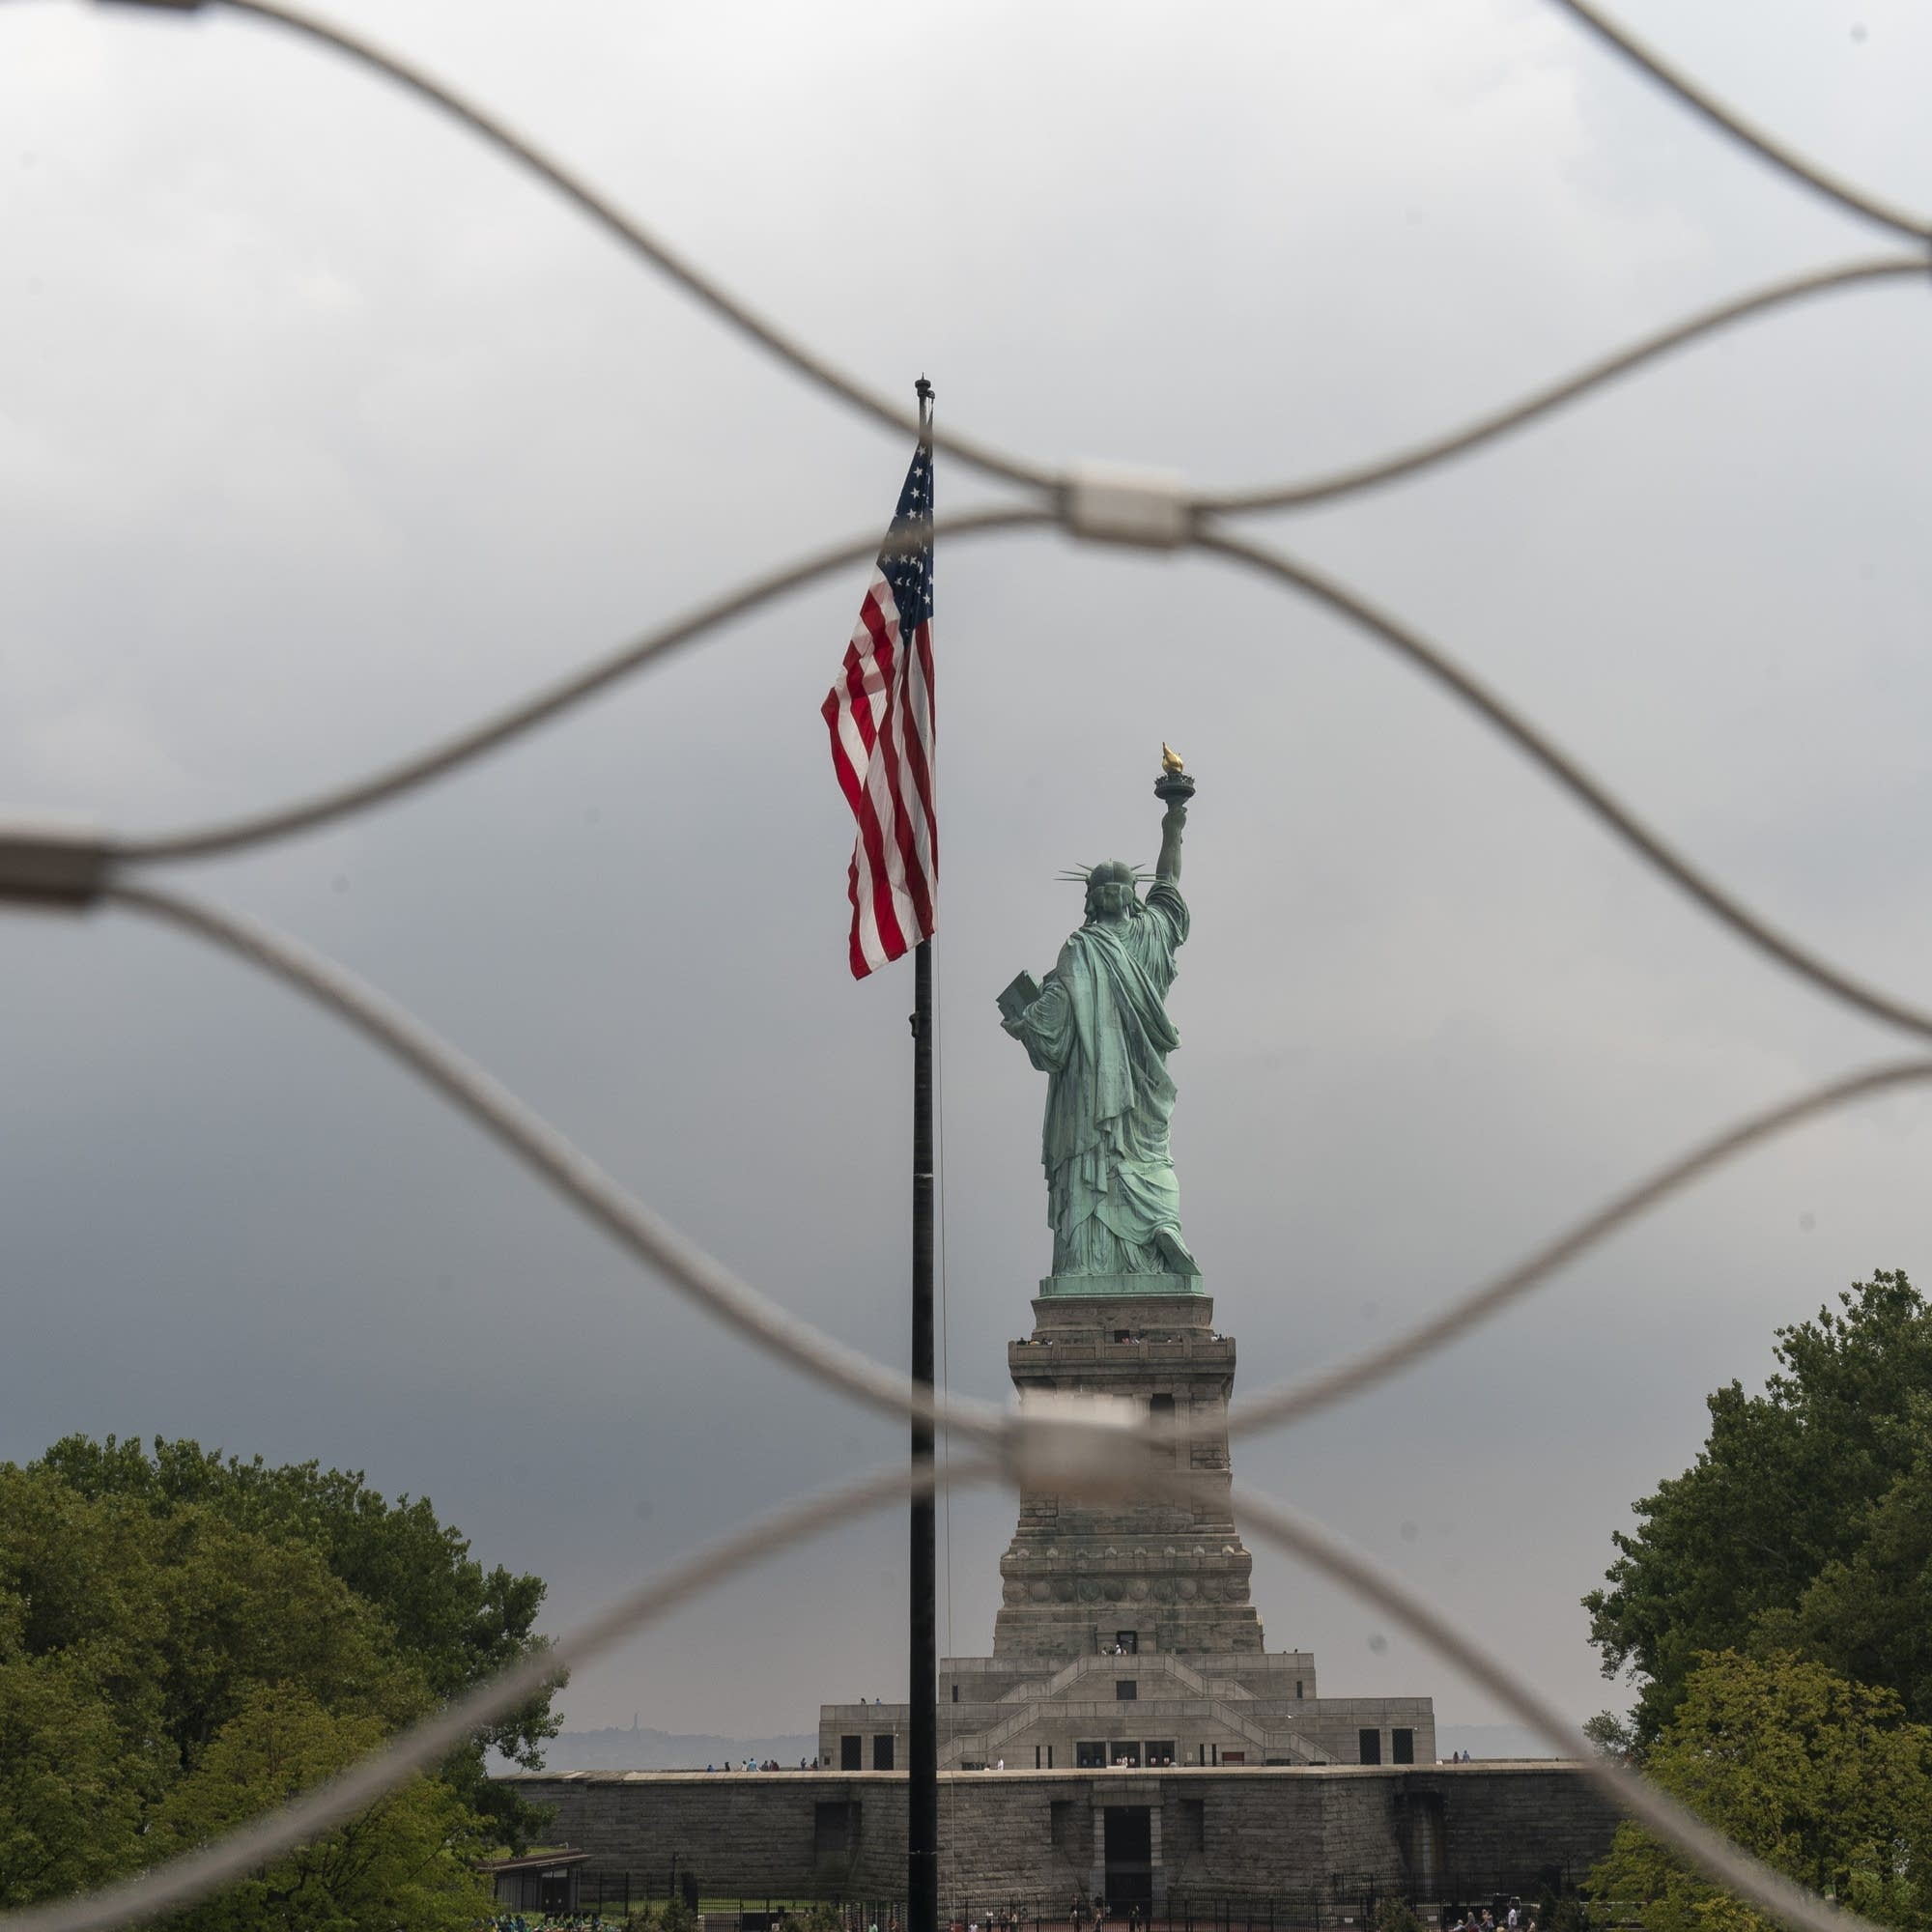 Statue of Liberty seen through a fence